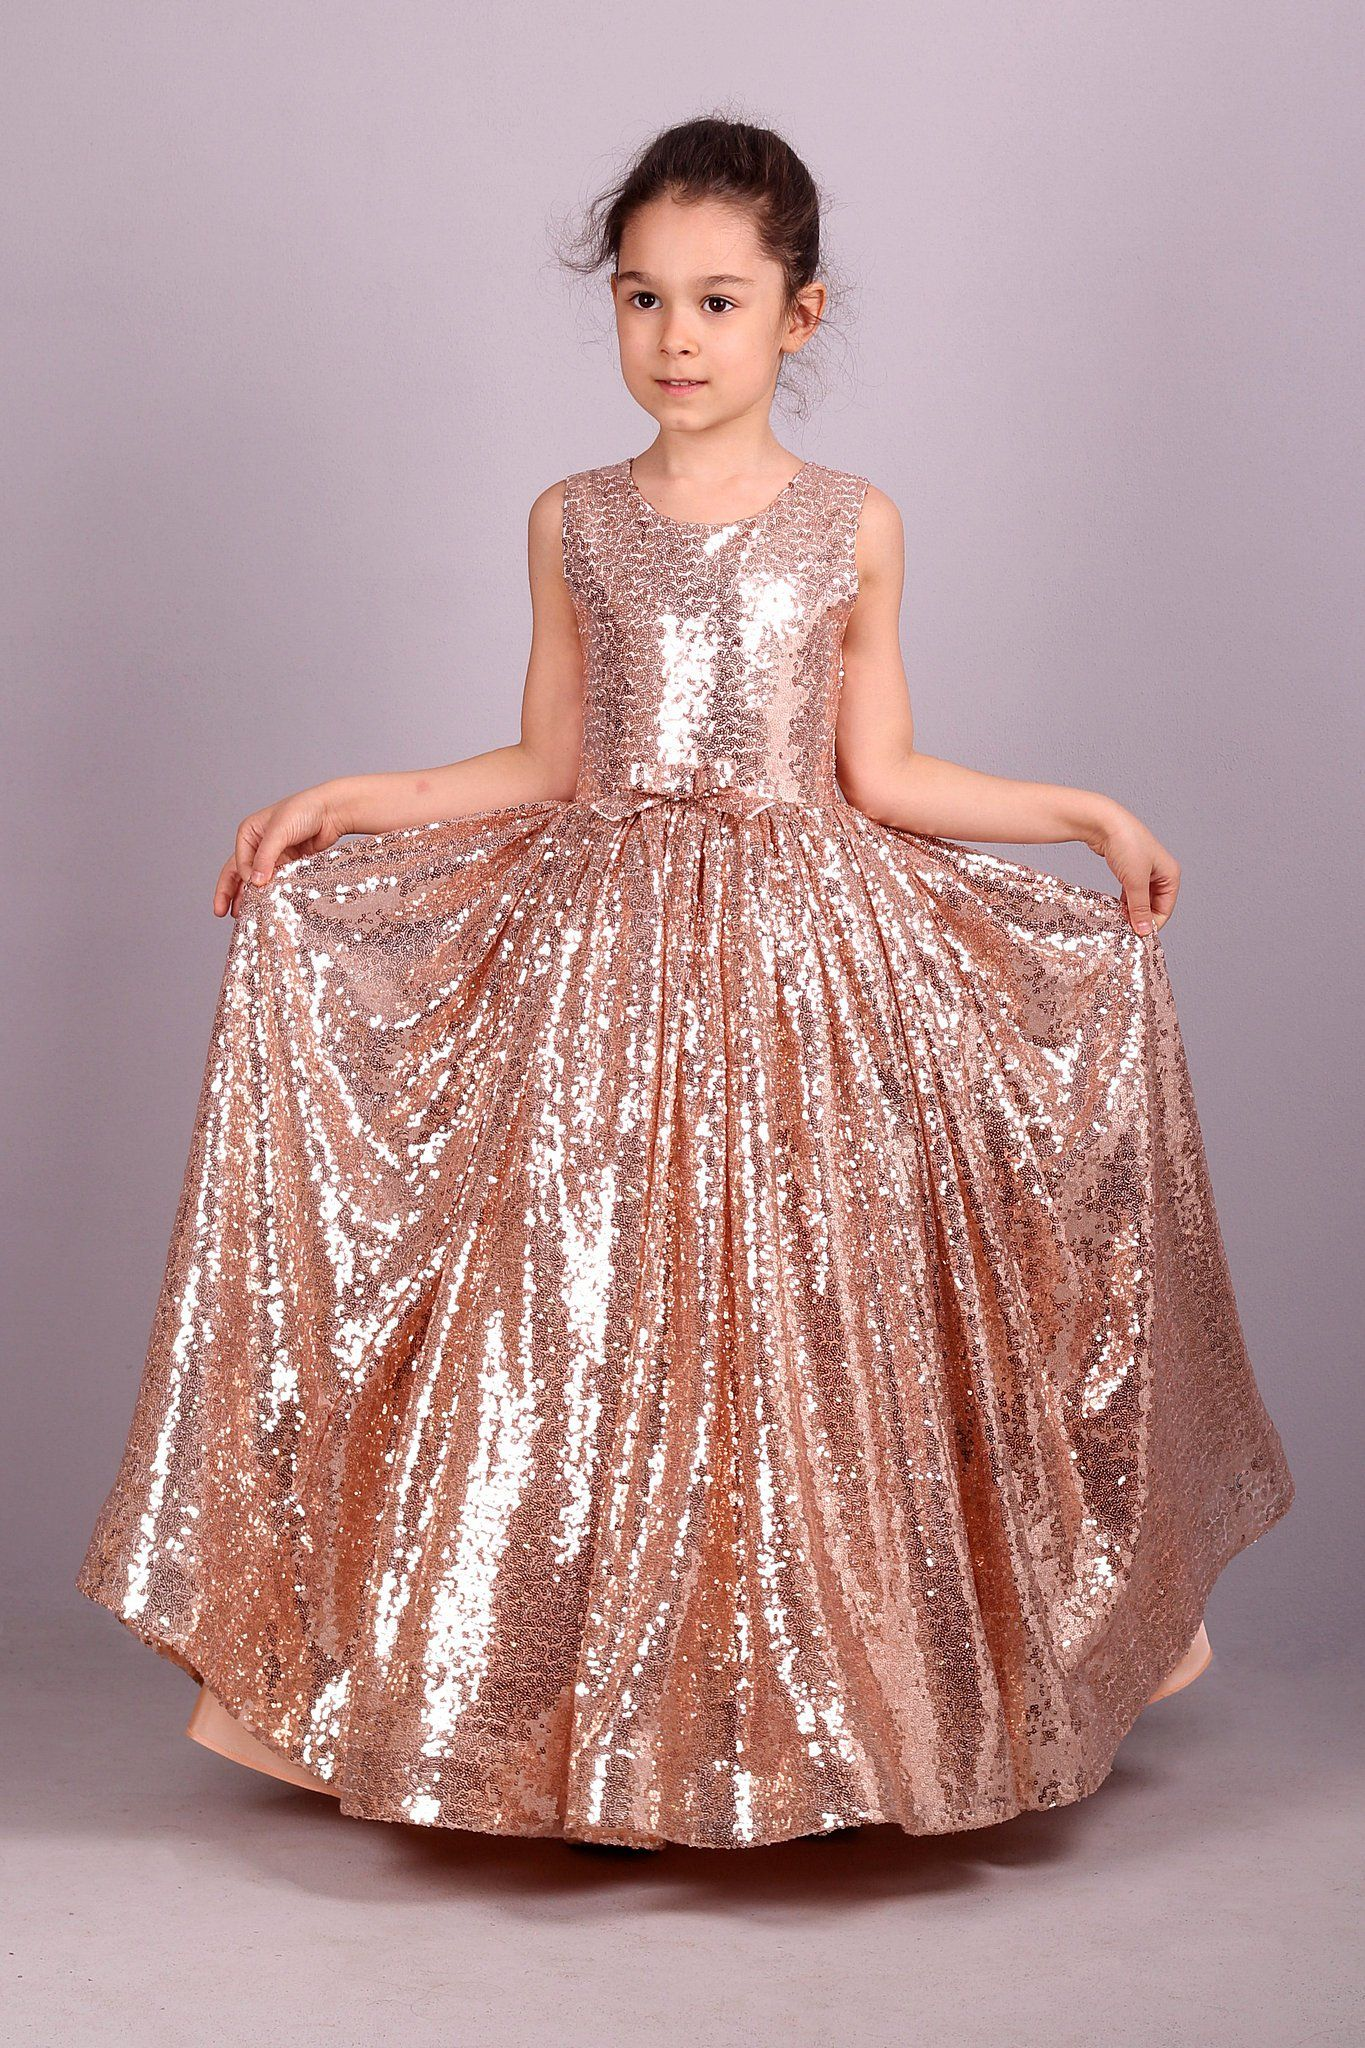 Sparkly Tutu Rose Gold Sequins Princess Dress2017Flower Girl Dresses Formal Gown